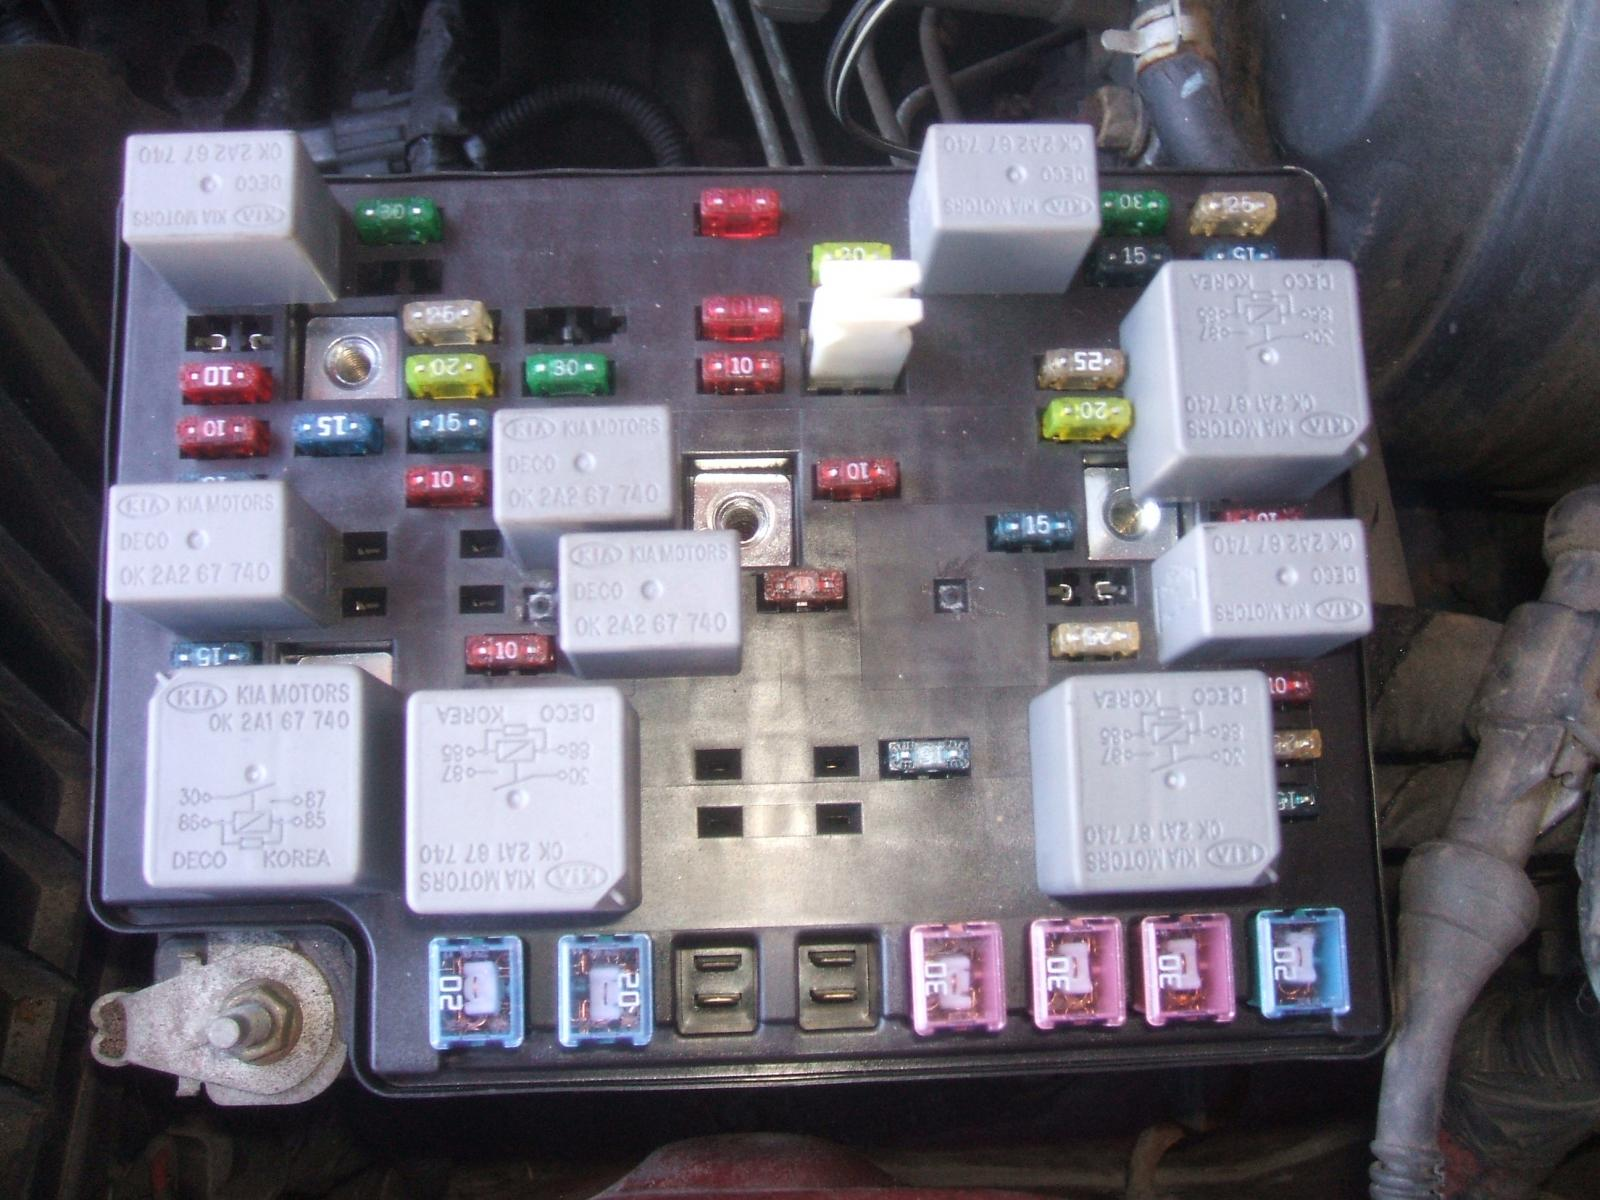 98 Kia Sephia Fuse Box 22 Wiring Diagram Images Diagrams 1996 Shuma Starting Problems Forum 11685d1338974764 3